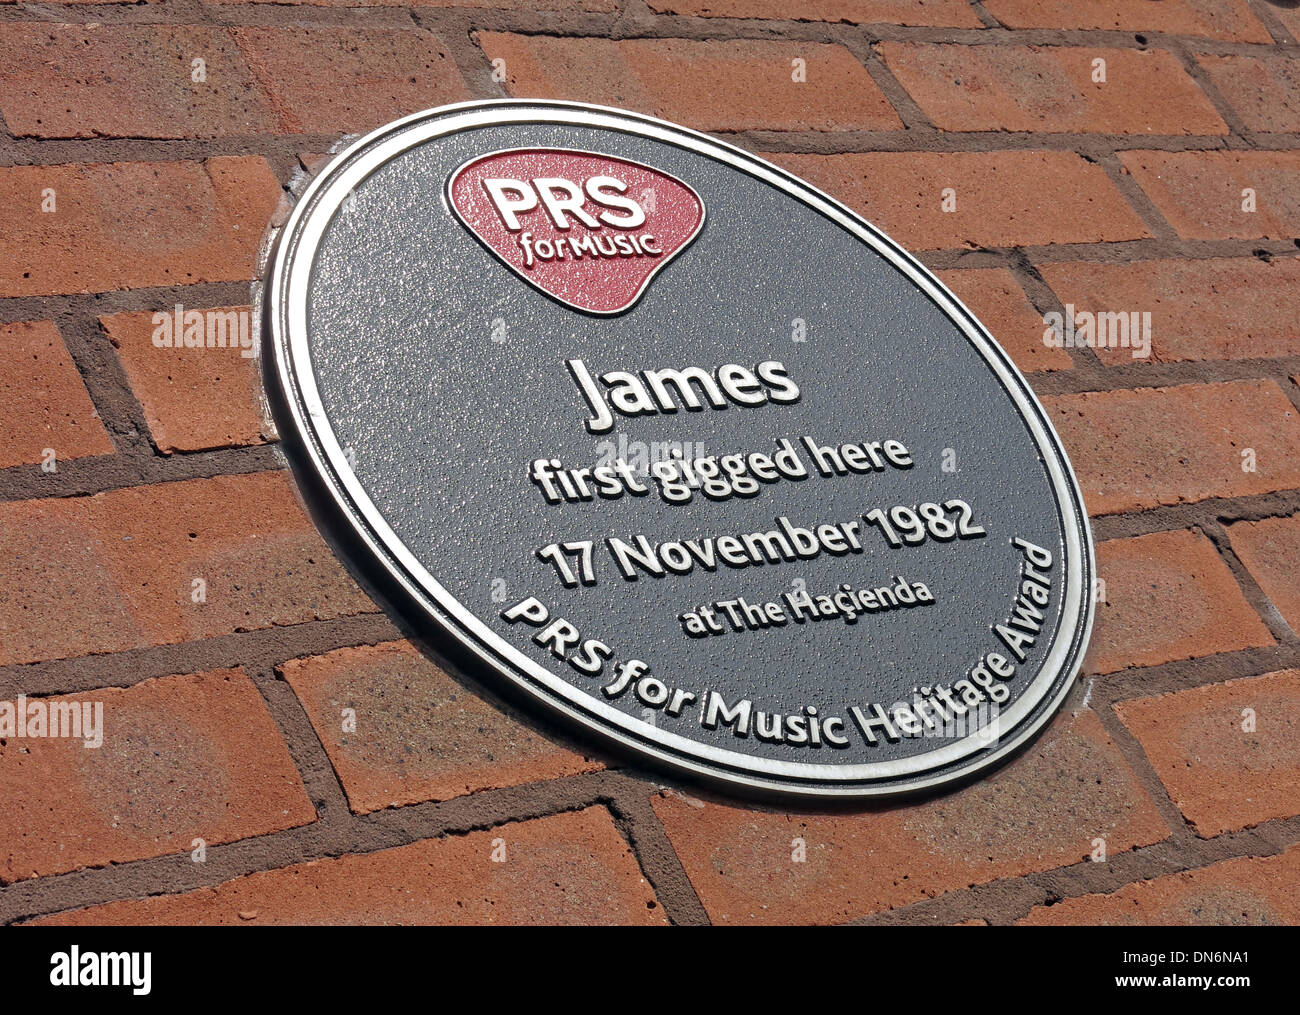 James PRS for Music Hacienda plaque Manchester England UK - Stock Image